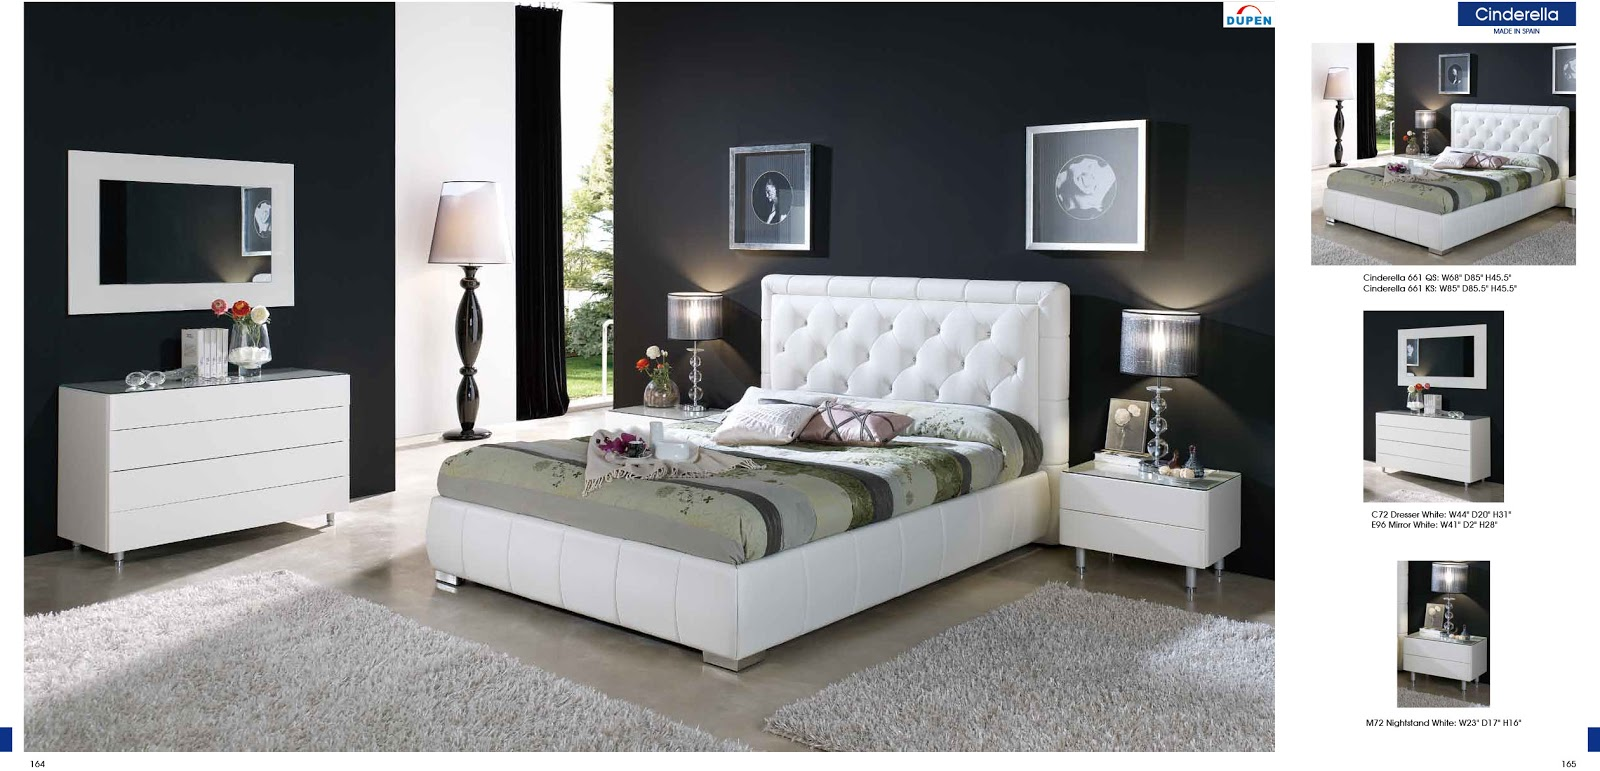 Wall hit new bedroom furniture wallpapers for New bedroom wallpaper